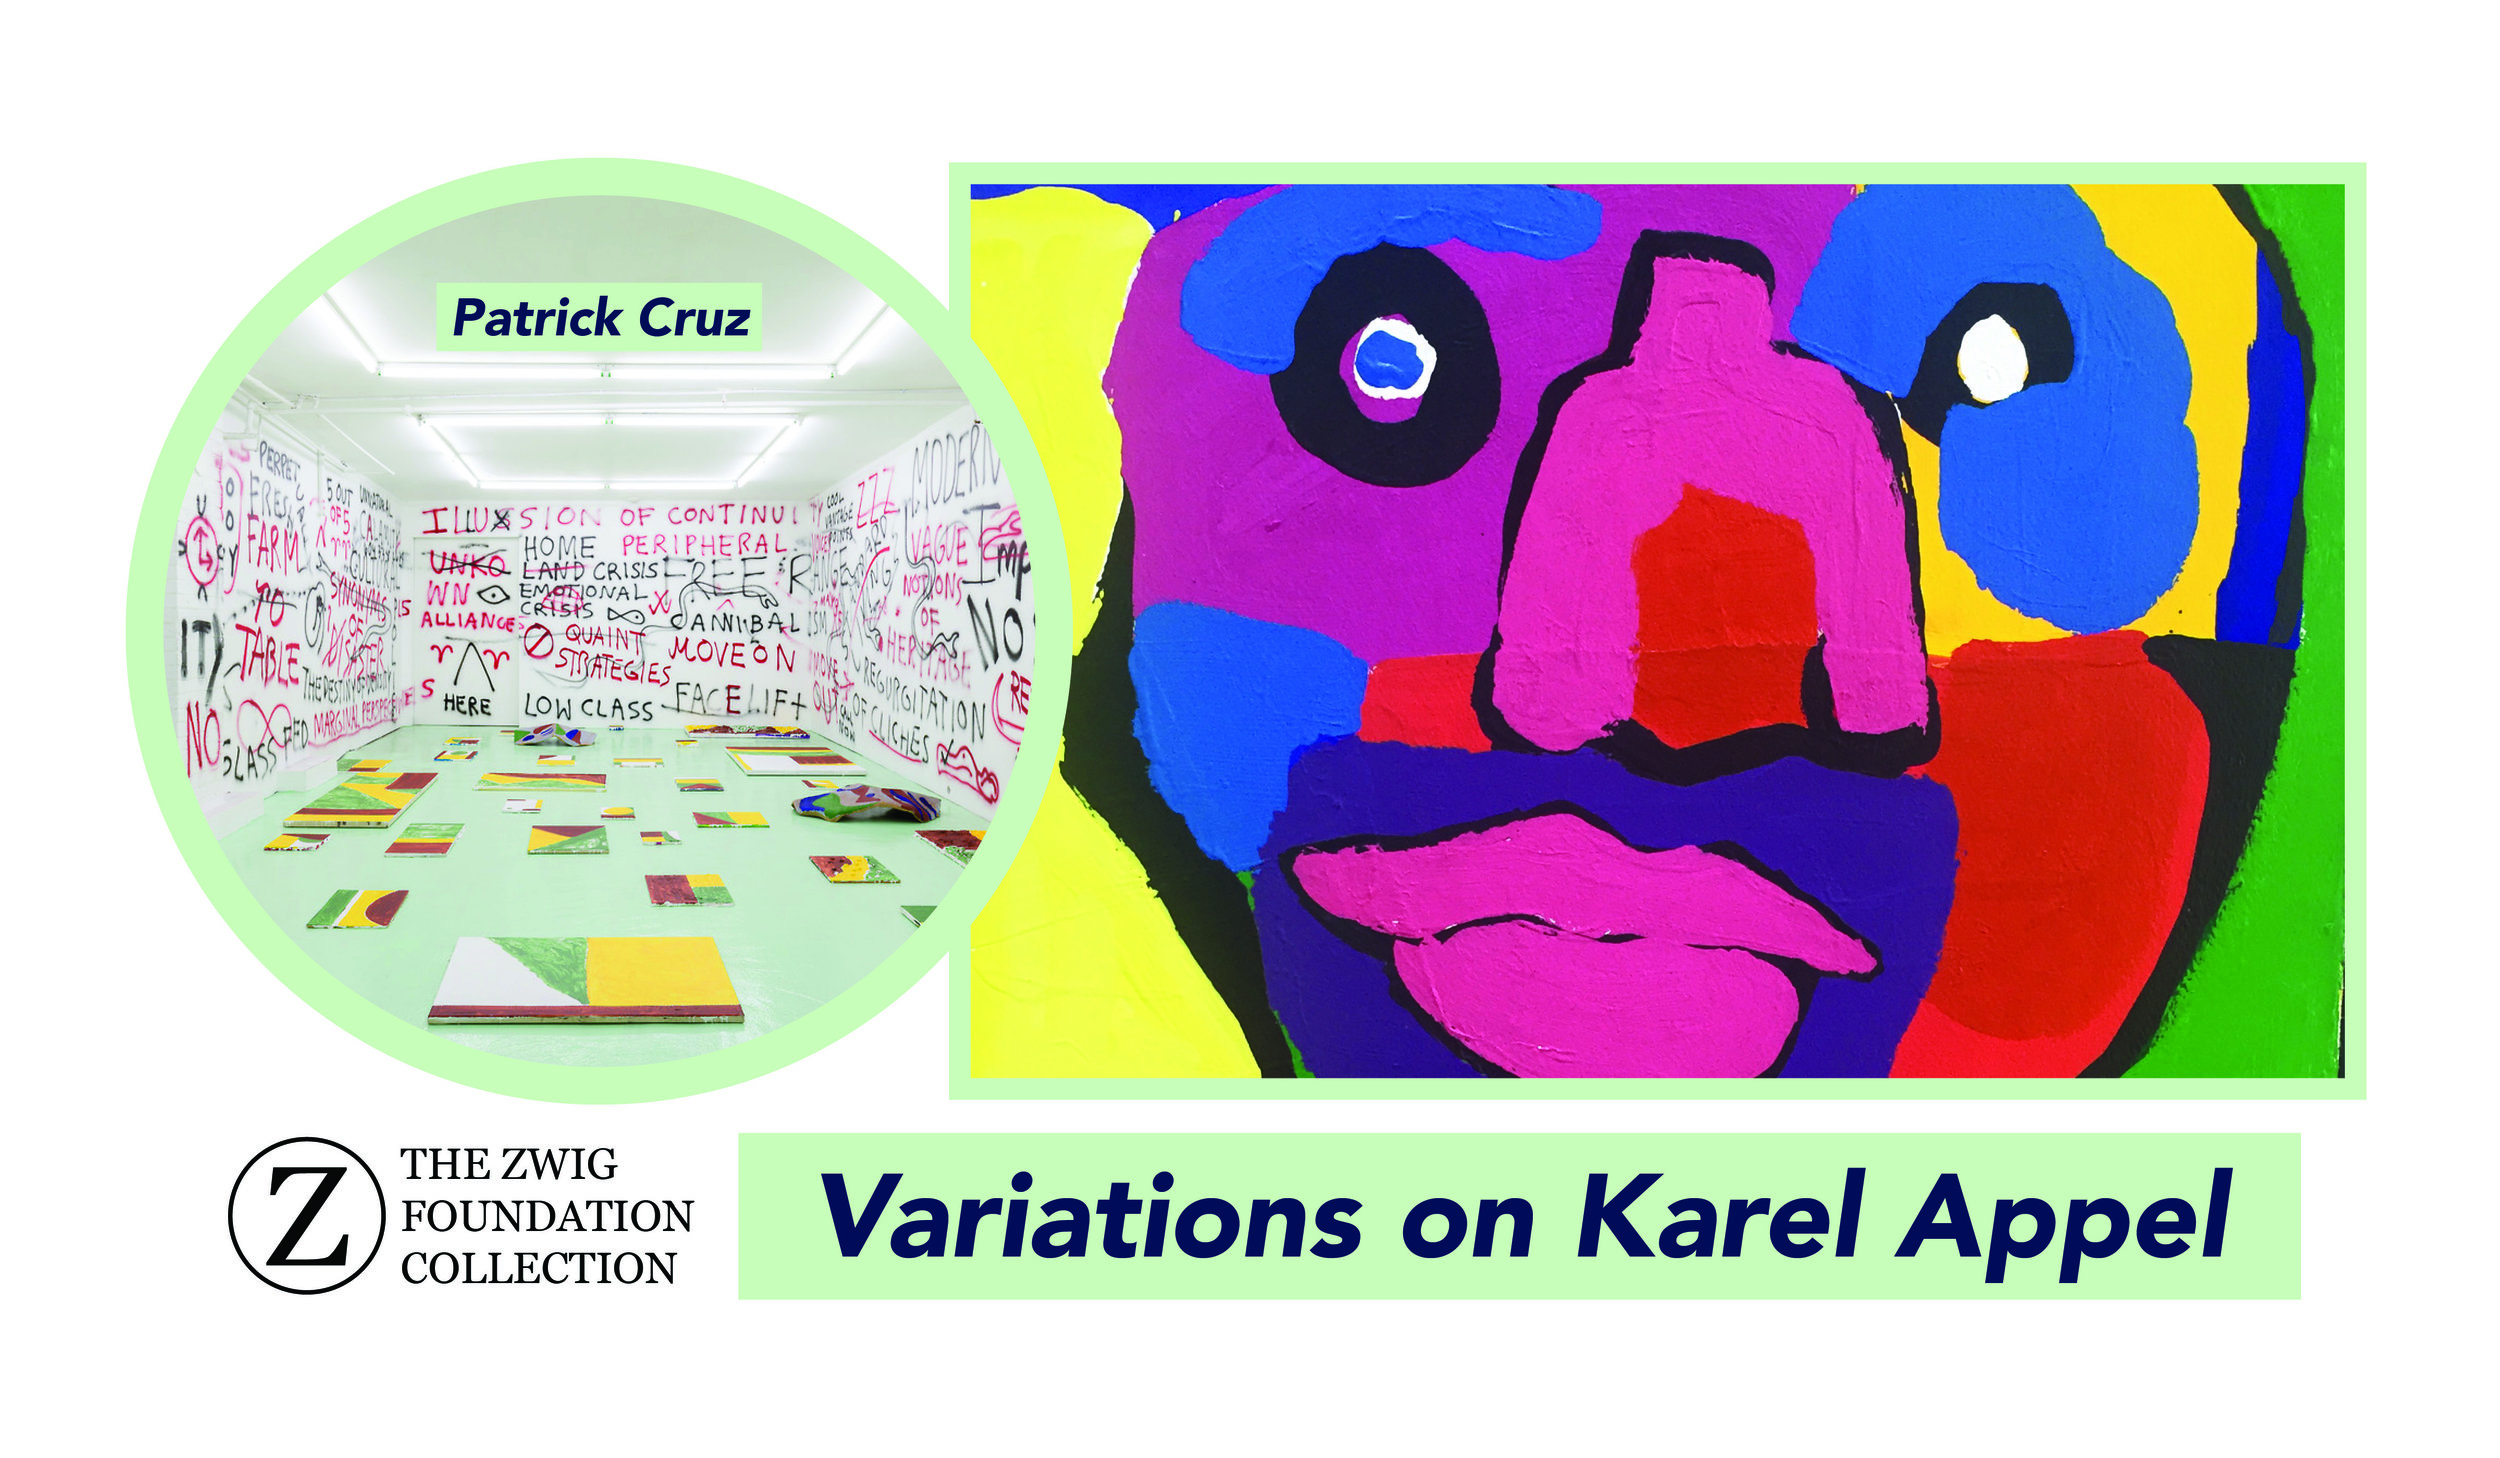 Variations on Karel Appel - Patrick Cruz is a Toronto-based artist who uses unconventional tools such as play and intuition to create thoughtful works of art. His work deals with a variety of themes such as colonialism, tradition, modernity and hybrid identities. Cruz won the RBC Canadian Painting Competition in 2015 and was recently longlisted for the prestigious Sobey Art Award this past month. We spoke with Cruz about Karel Appel, noted CoBrA co-founder and playful revolutionary.